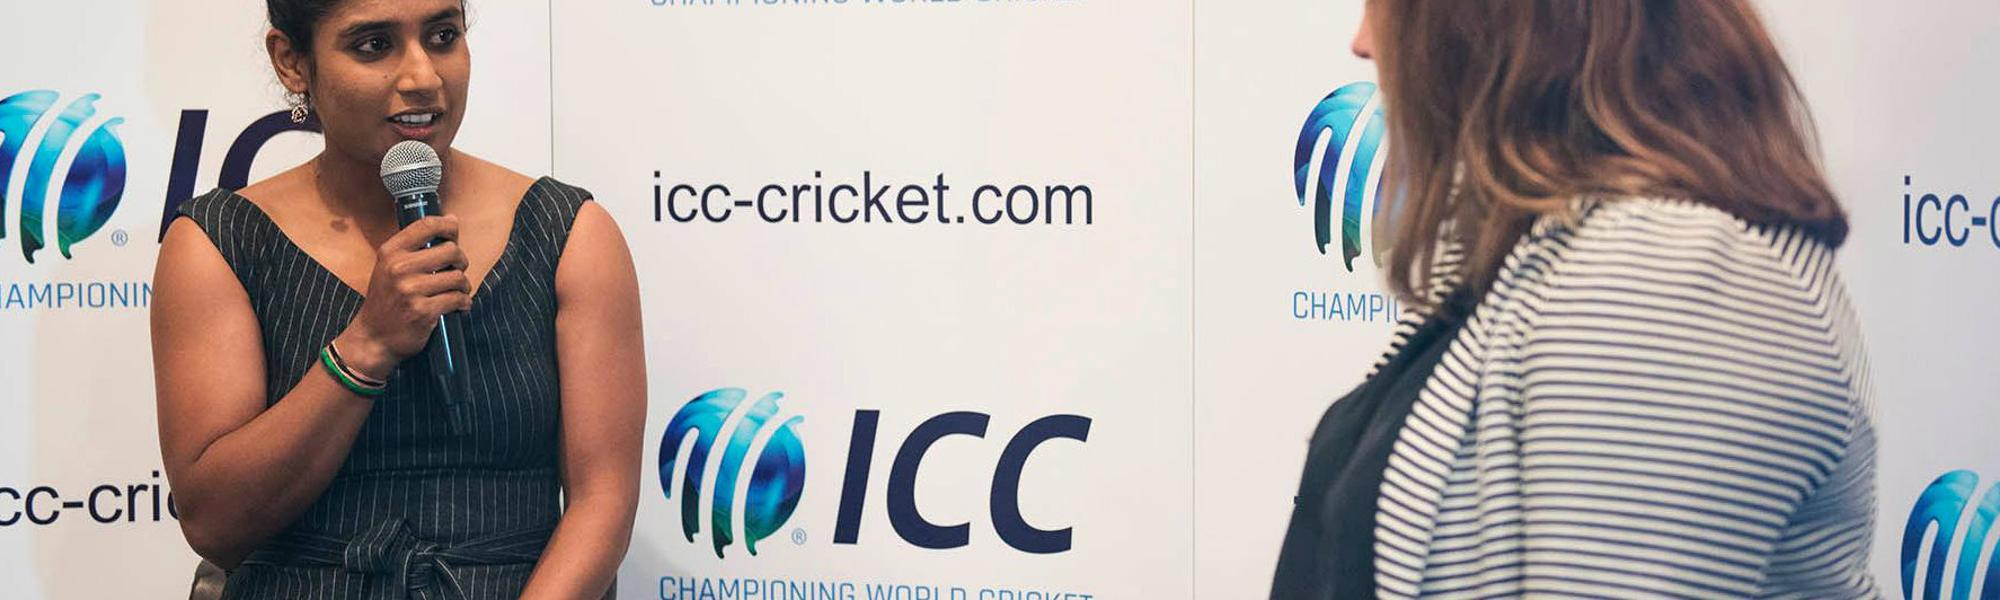 Mithali Raj - ICC Women's Cricket Forum 2018